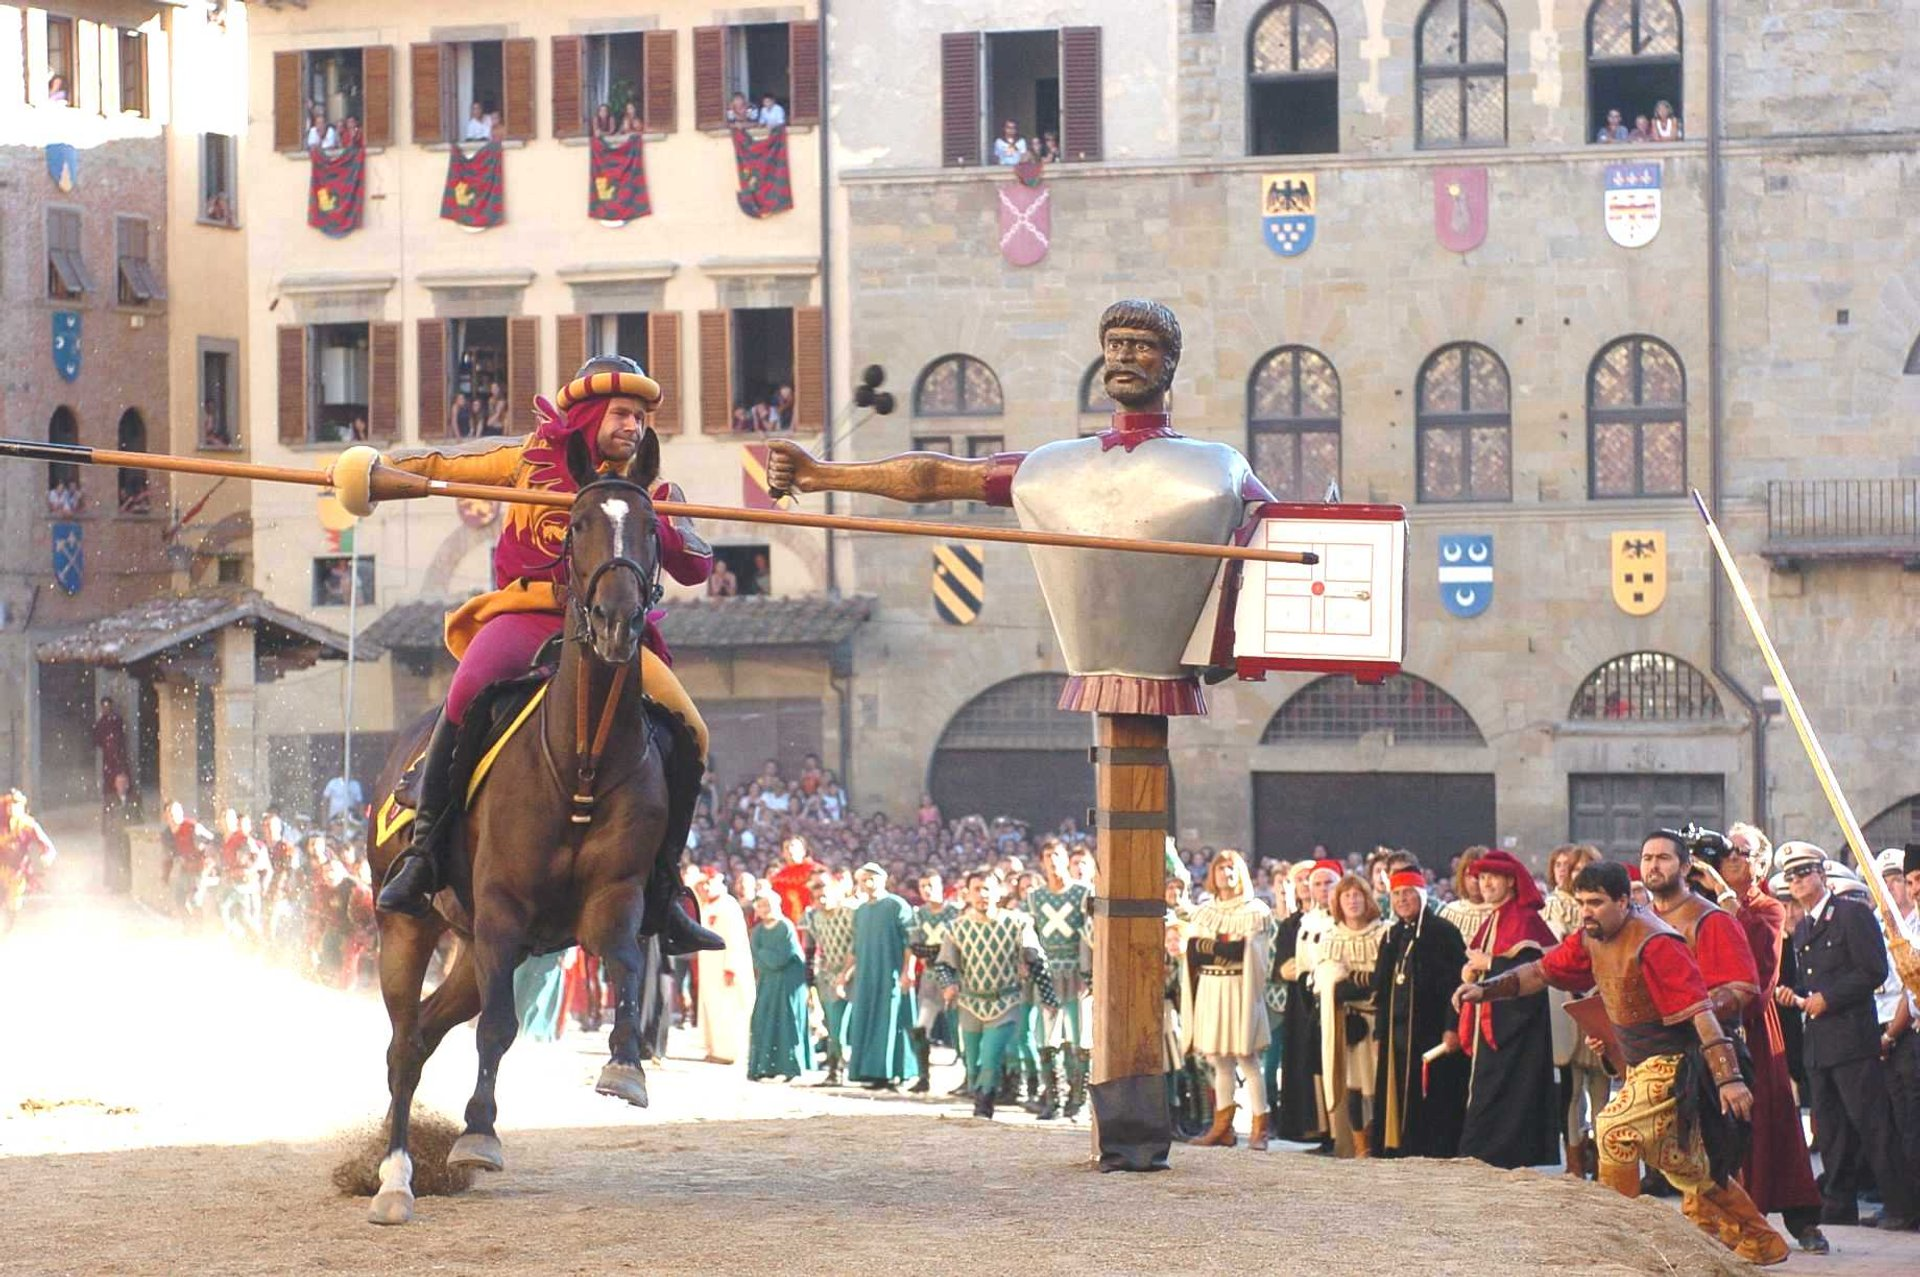 Best time for Giostra del Saracino (Joust of the Saracens) in Tuscany 2020